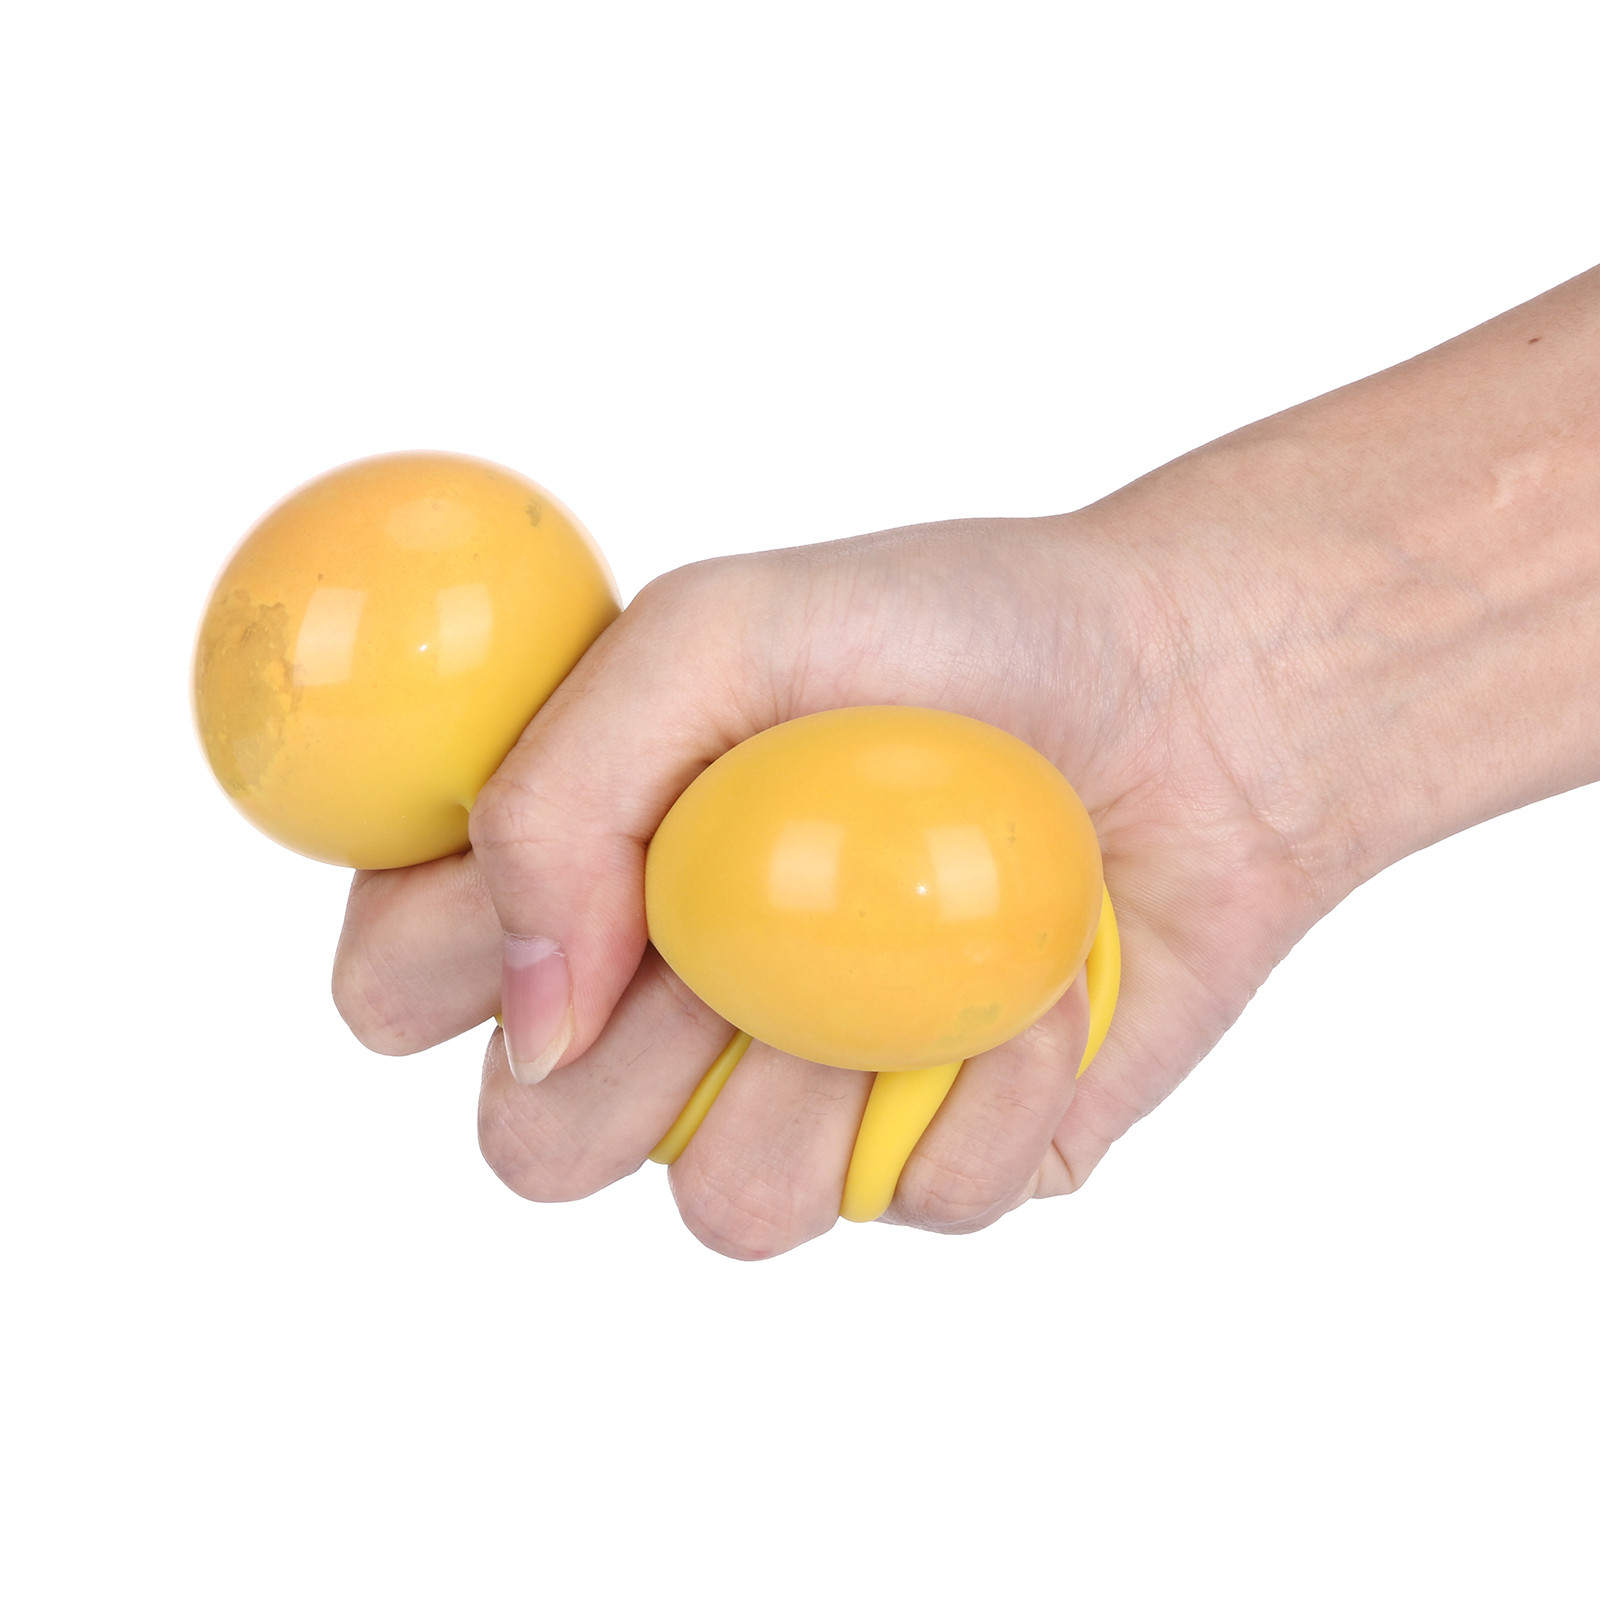 Stress Relief Squeezing Balls For Kids And Adults Toy Pressure Ball Toy Change Colour Antistress Squeeze Ball Decompression Toy img5